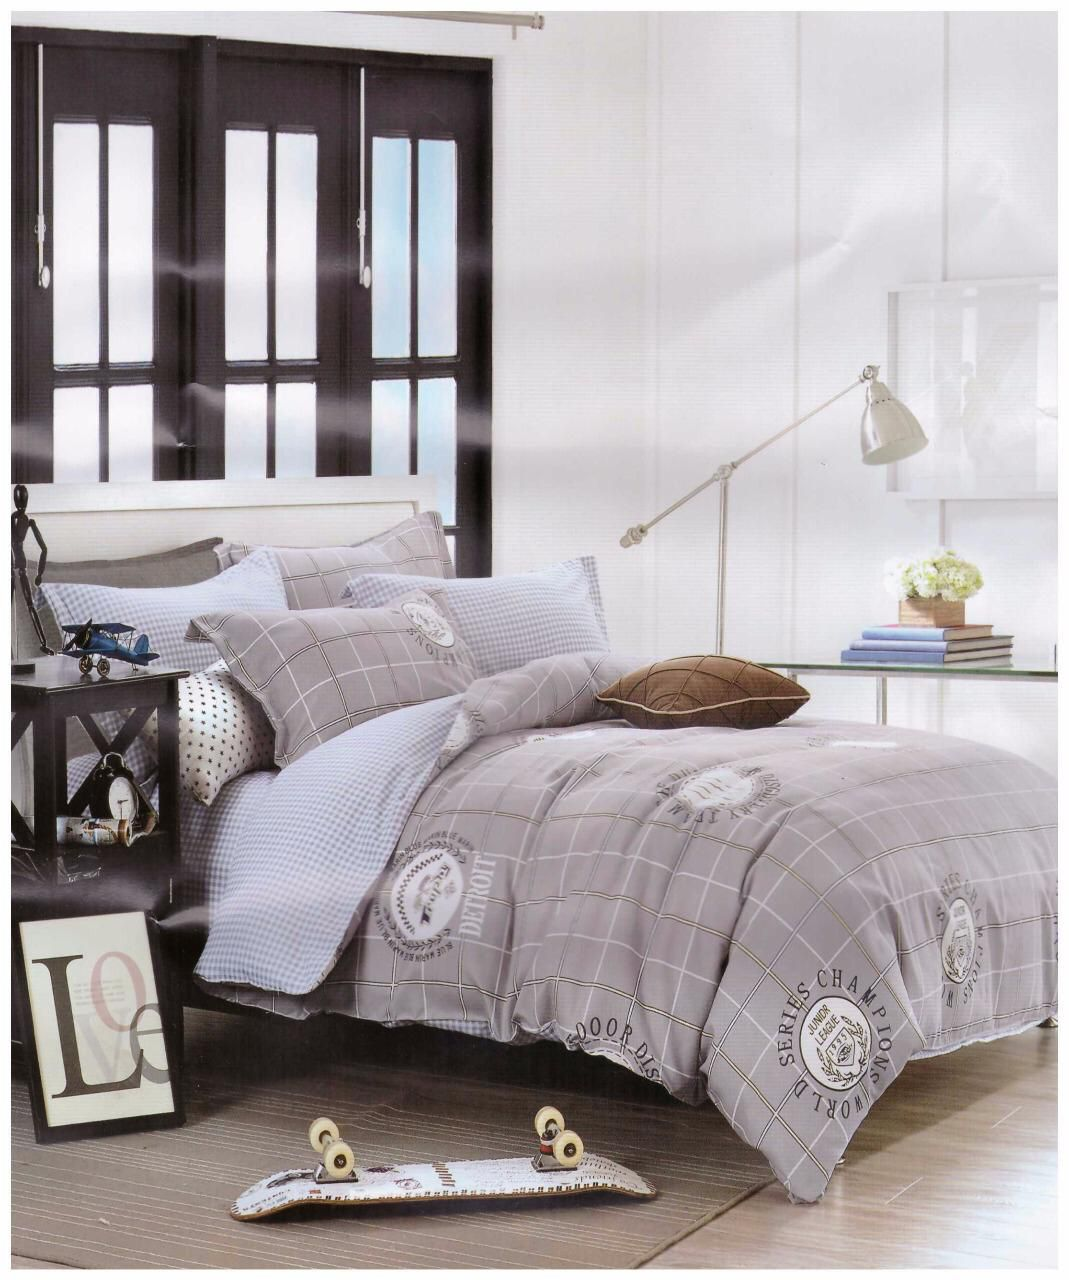 Bed Sheets Wholesalers In Kolkata And Manufacturers In India Bed